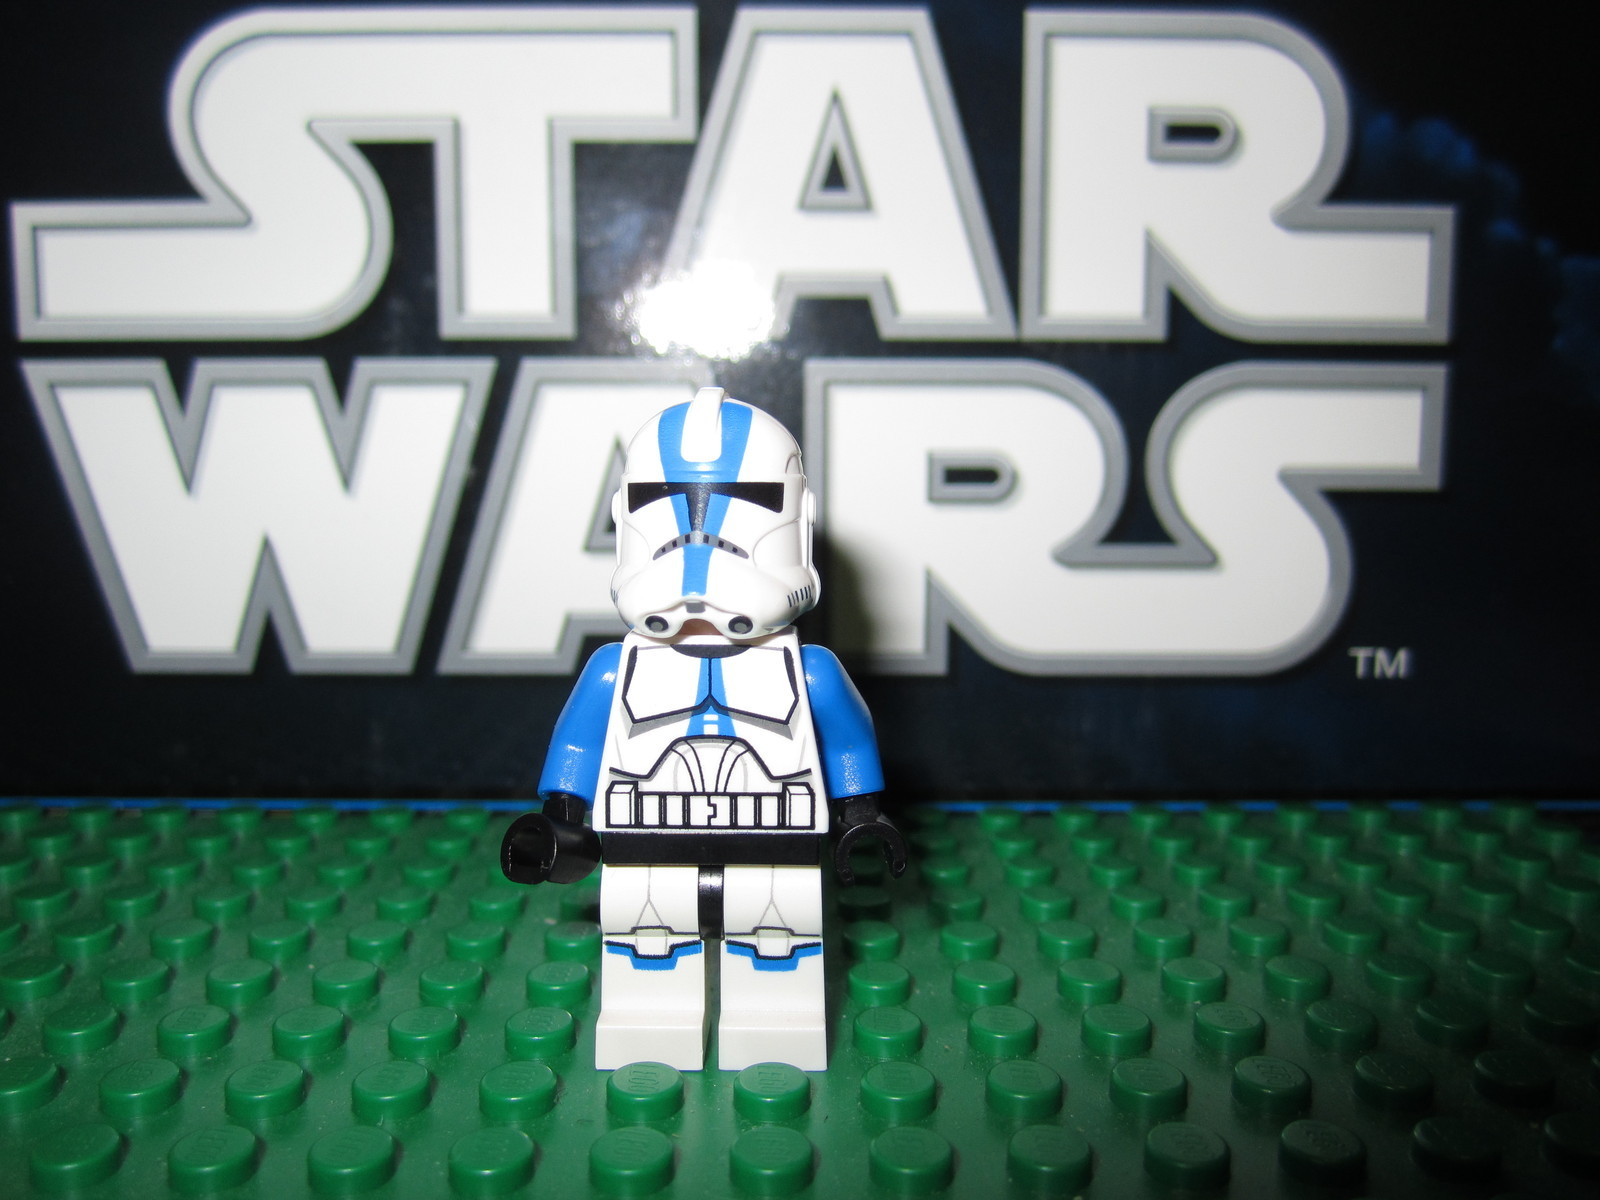 lego star wars 501st clone trooper and ahsoka tano minfigures on